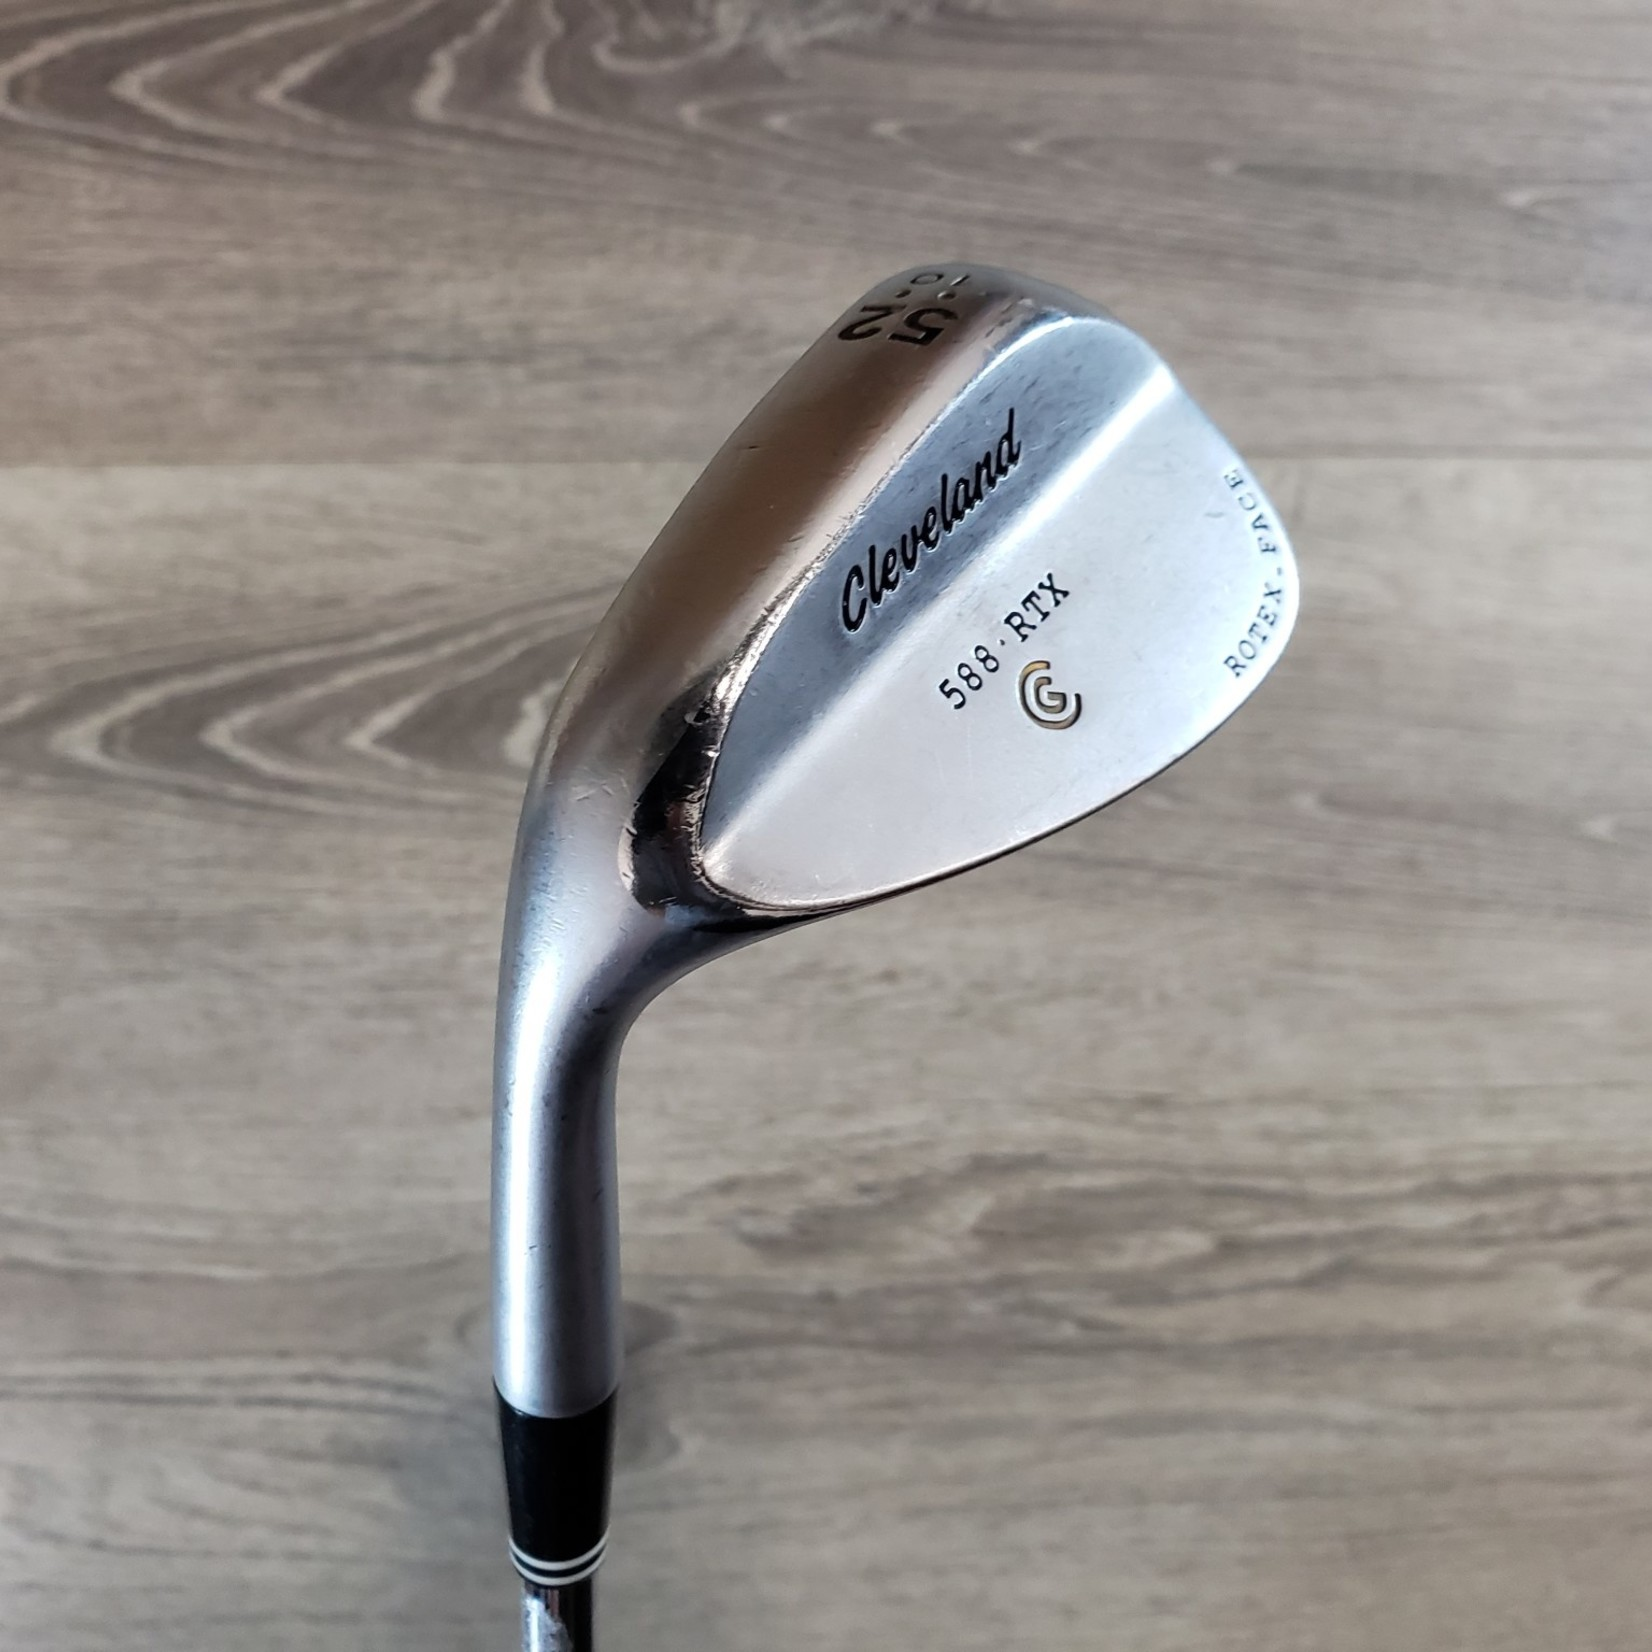 Cleveland Cleveland 588 RTX 52* 10 Dynamic Gold Wedge (LH)